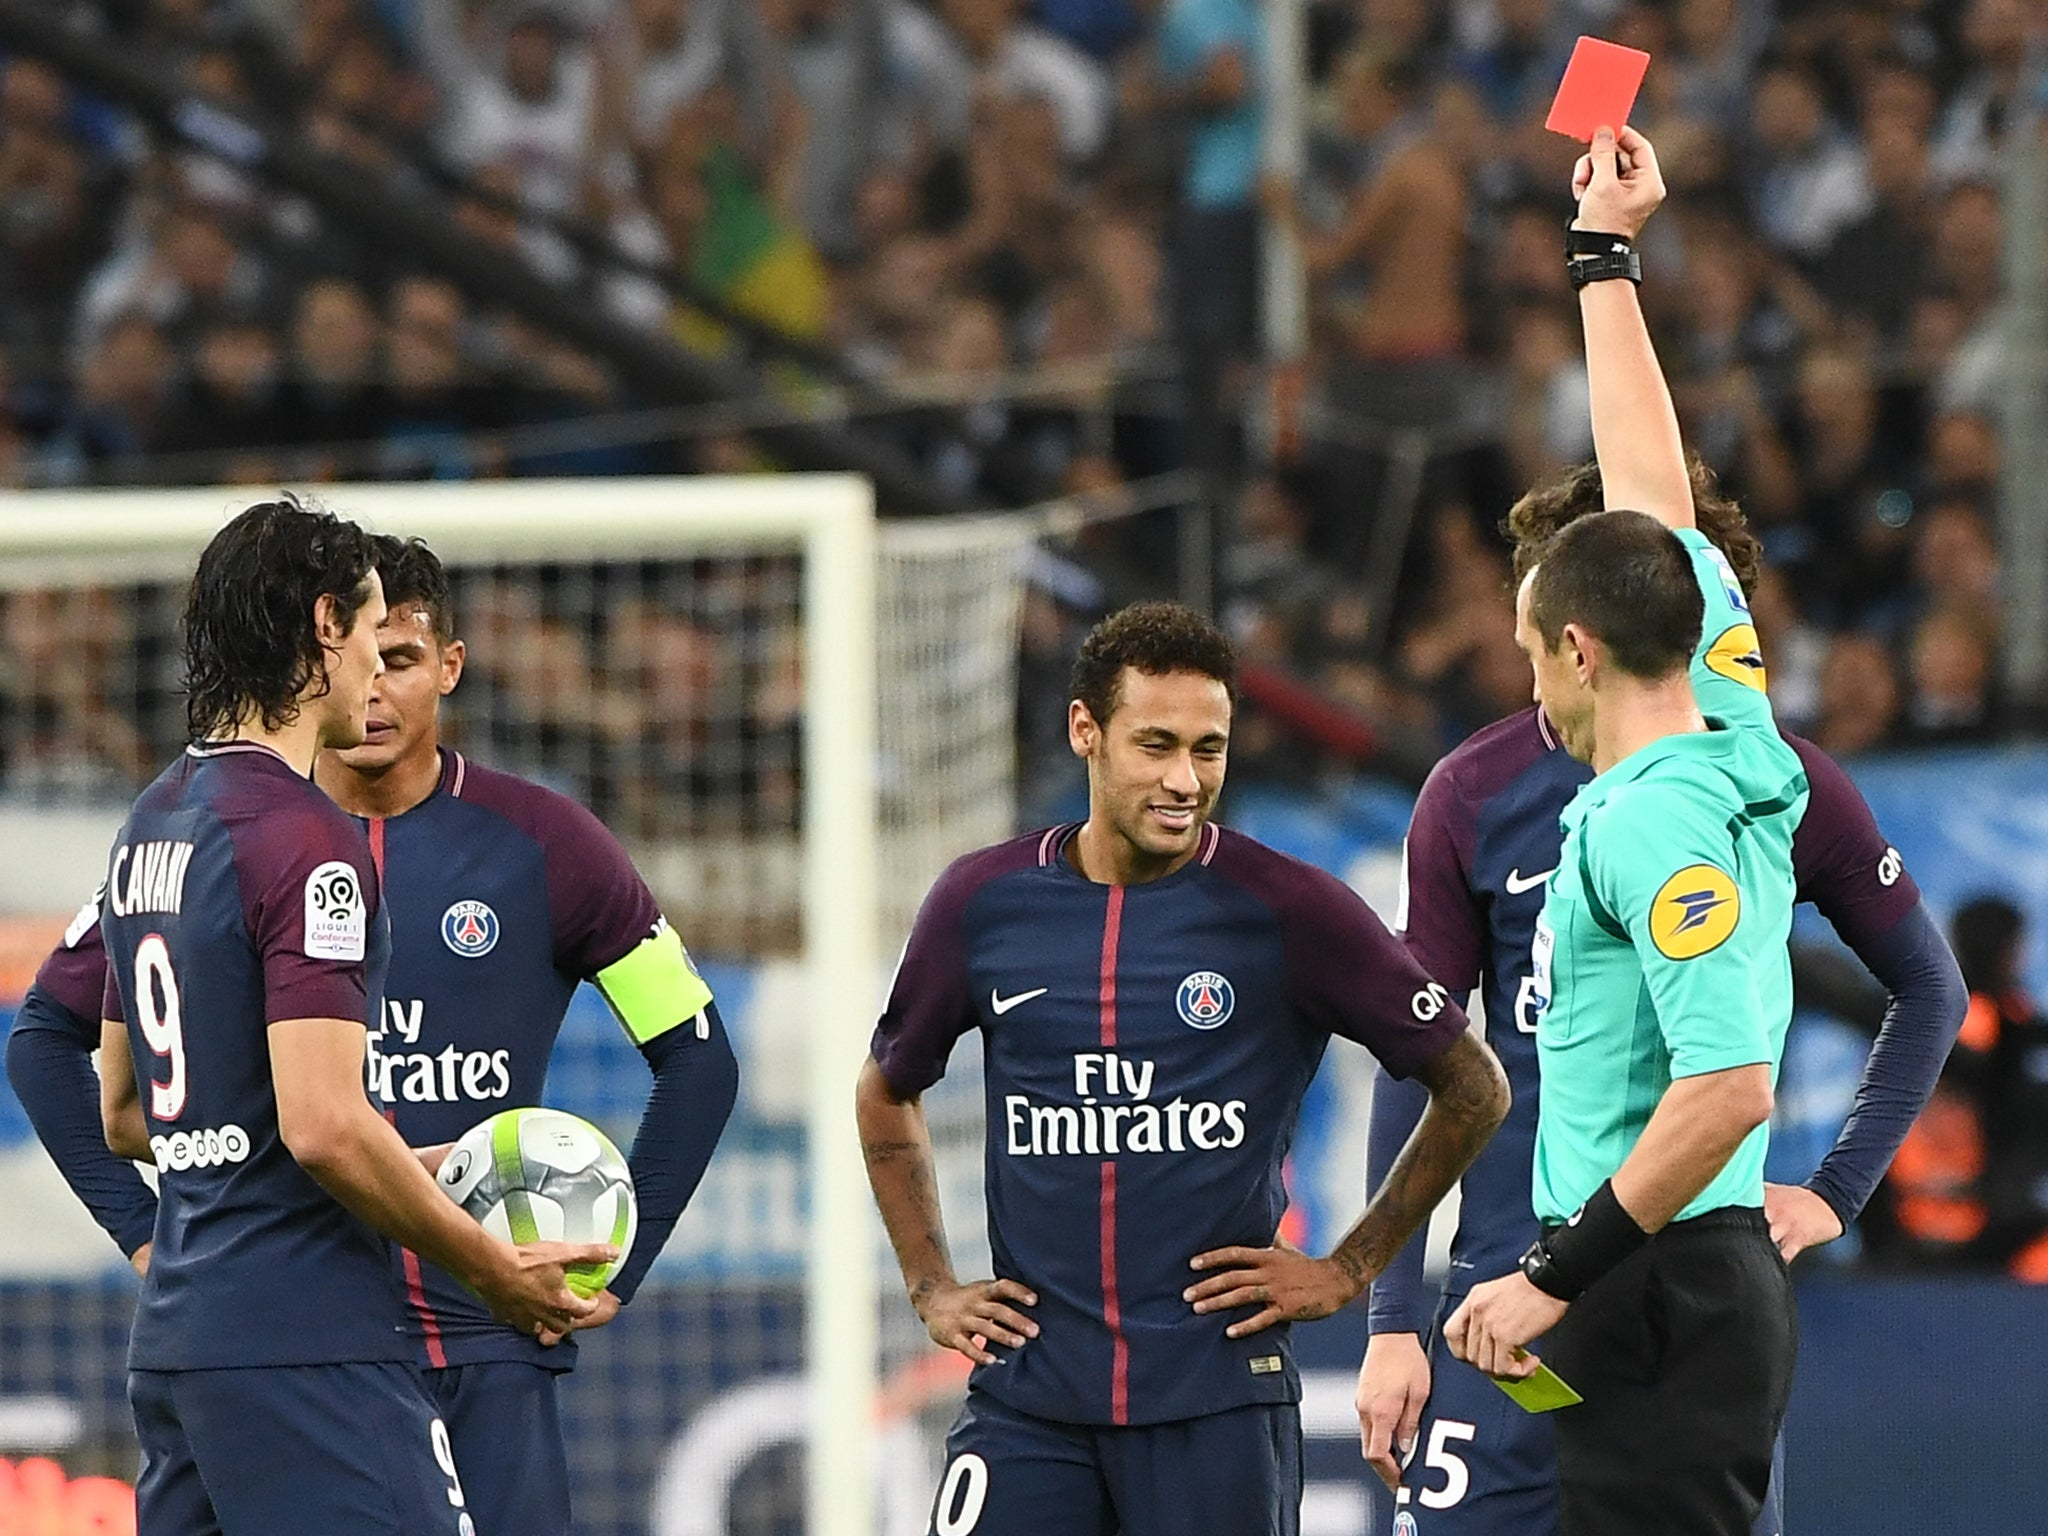 Neymar claims Marseille fans threw baguettes at him after being